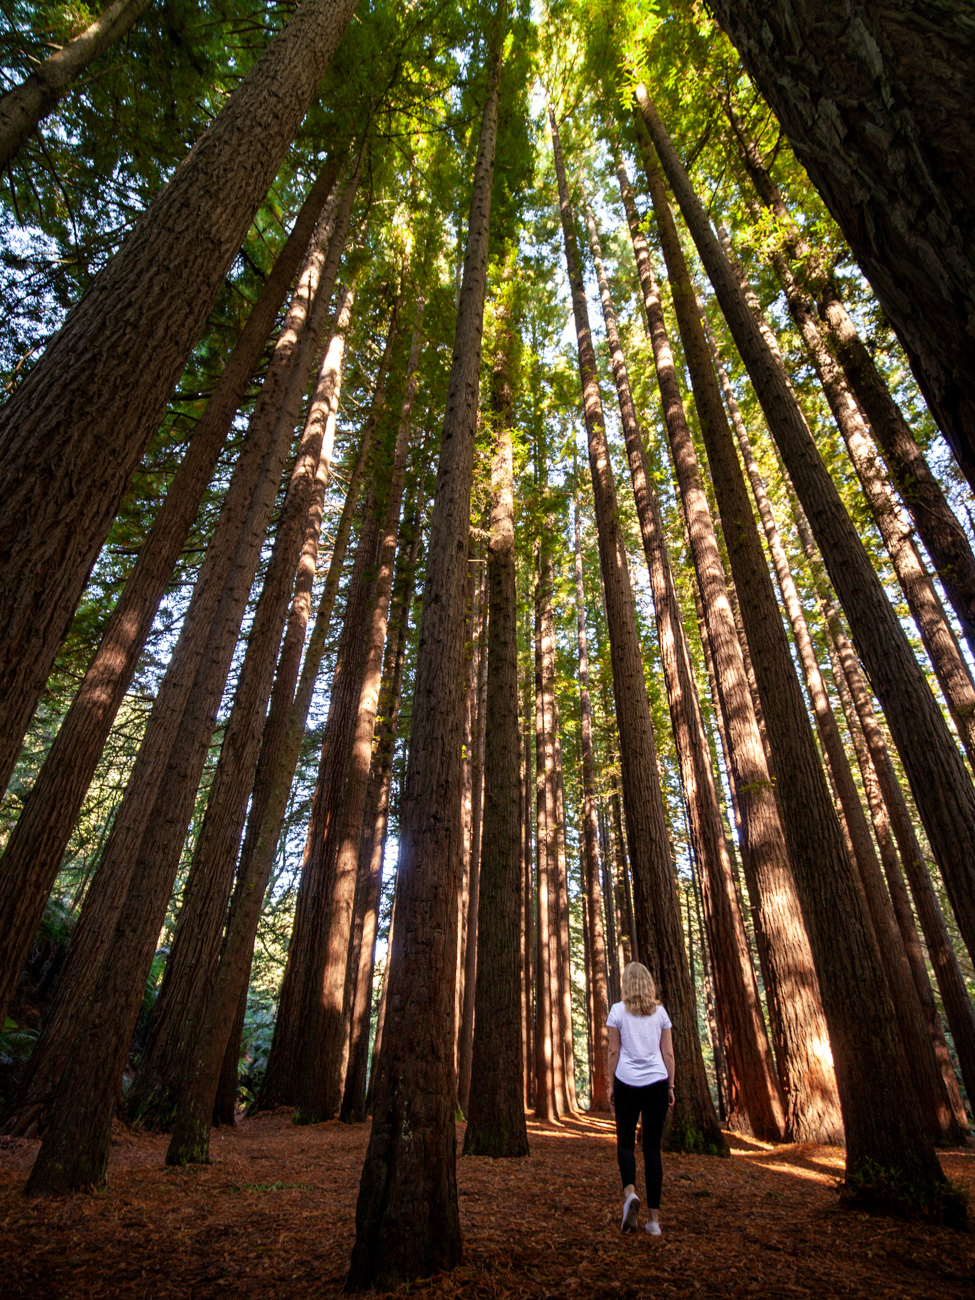 Imbi at The Redwoods, Great Otway National Park